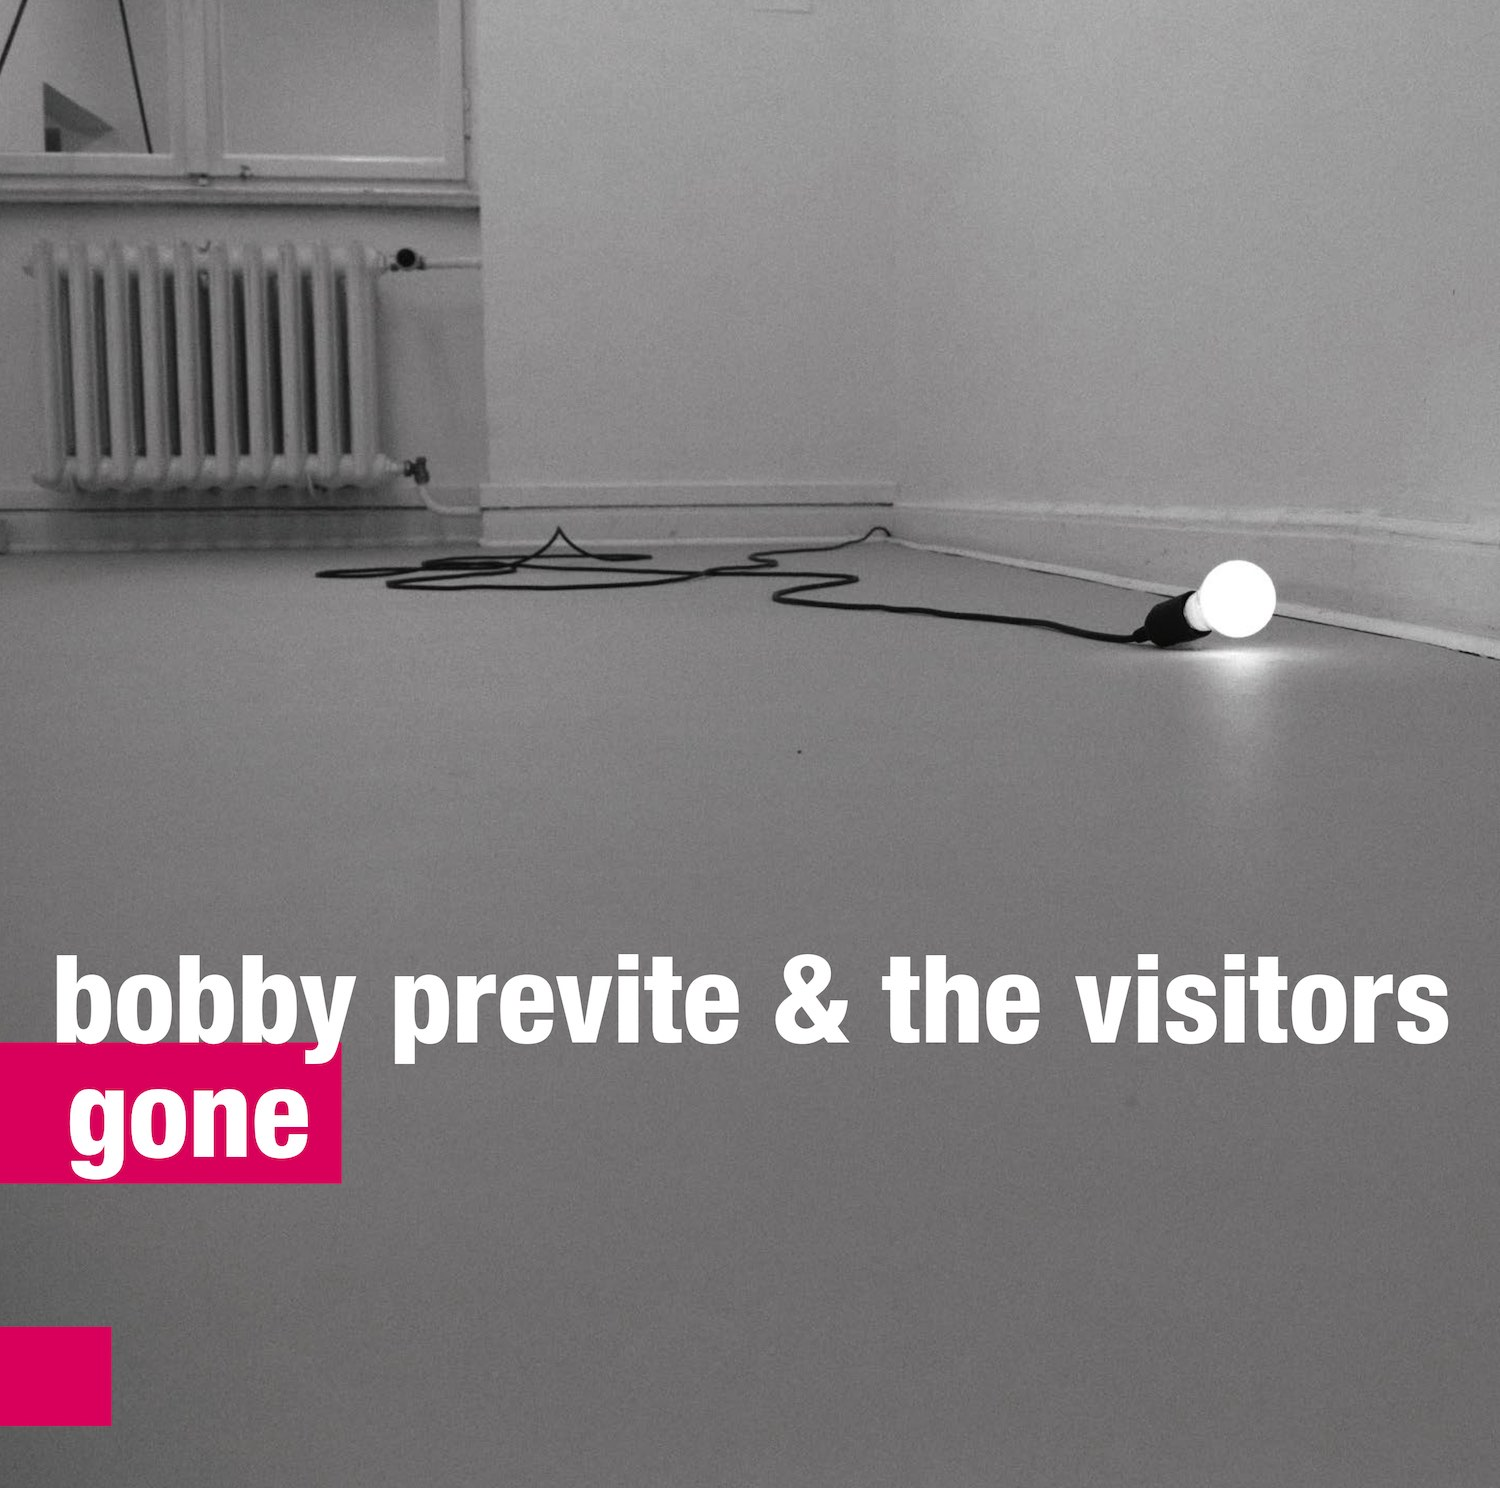 bobby-previte-visitors-gone-website.jpg